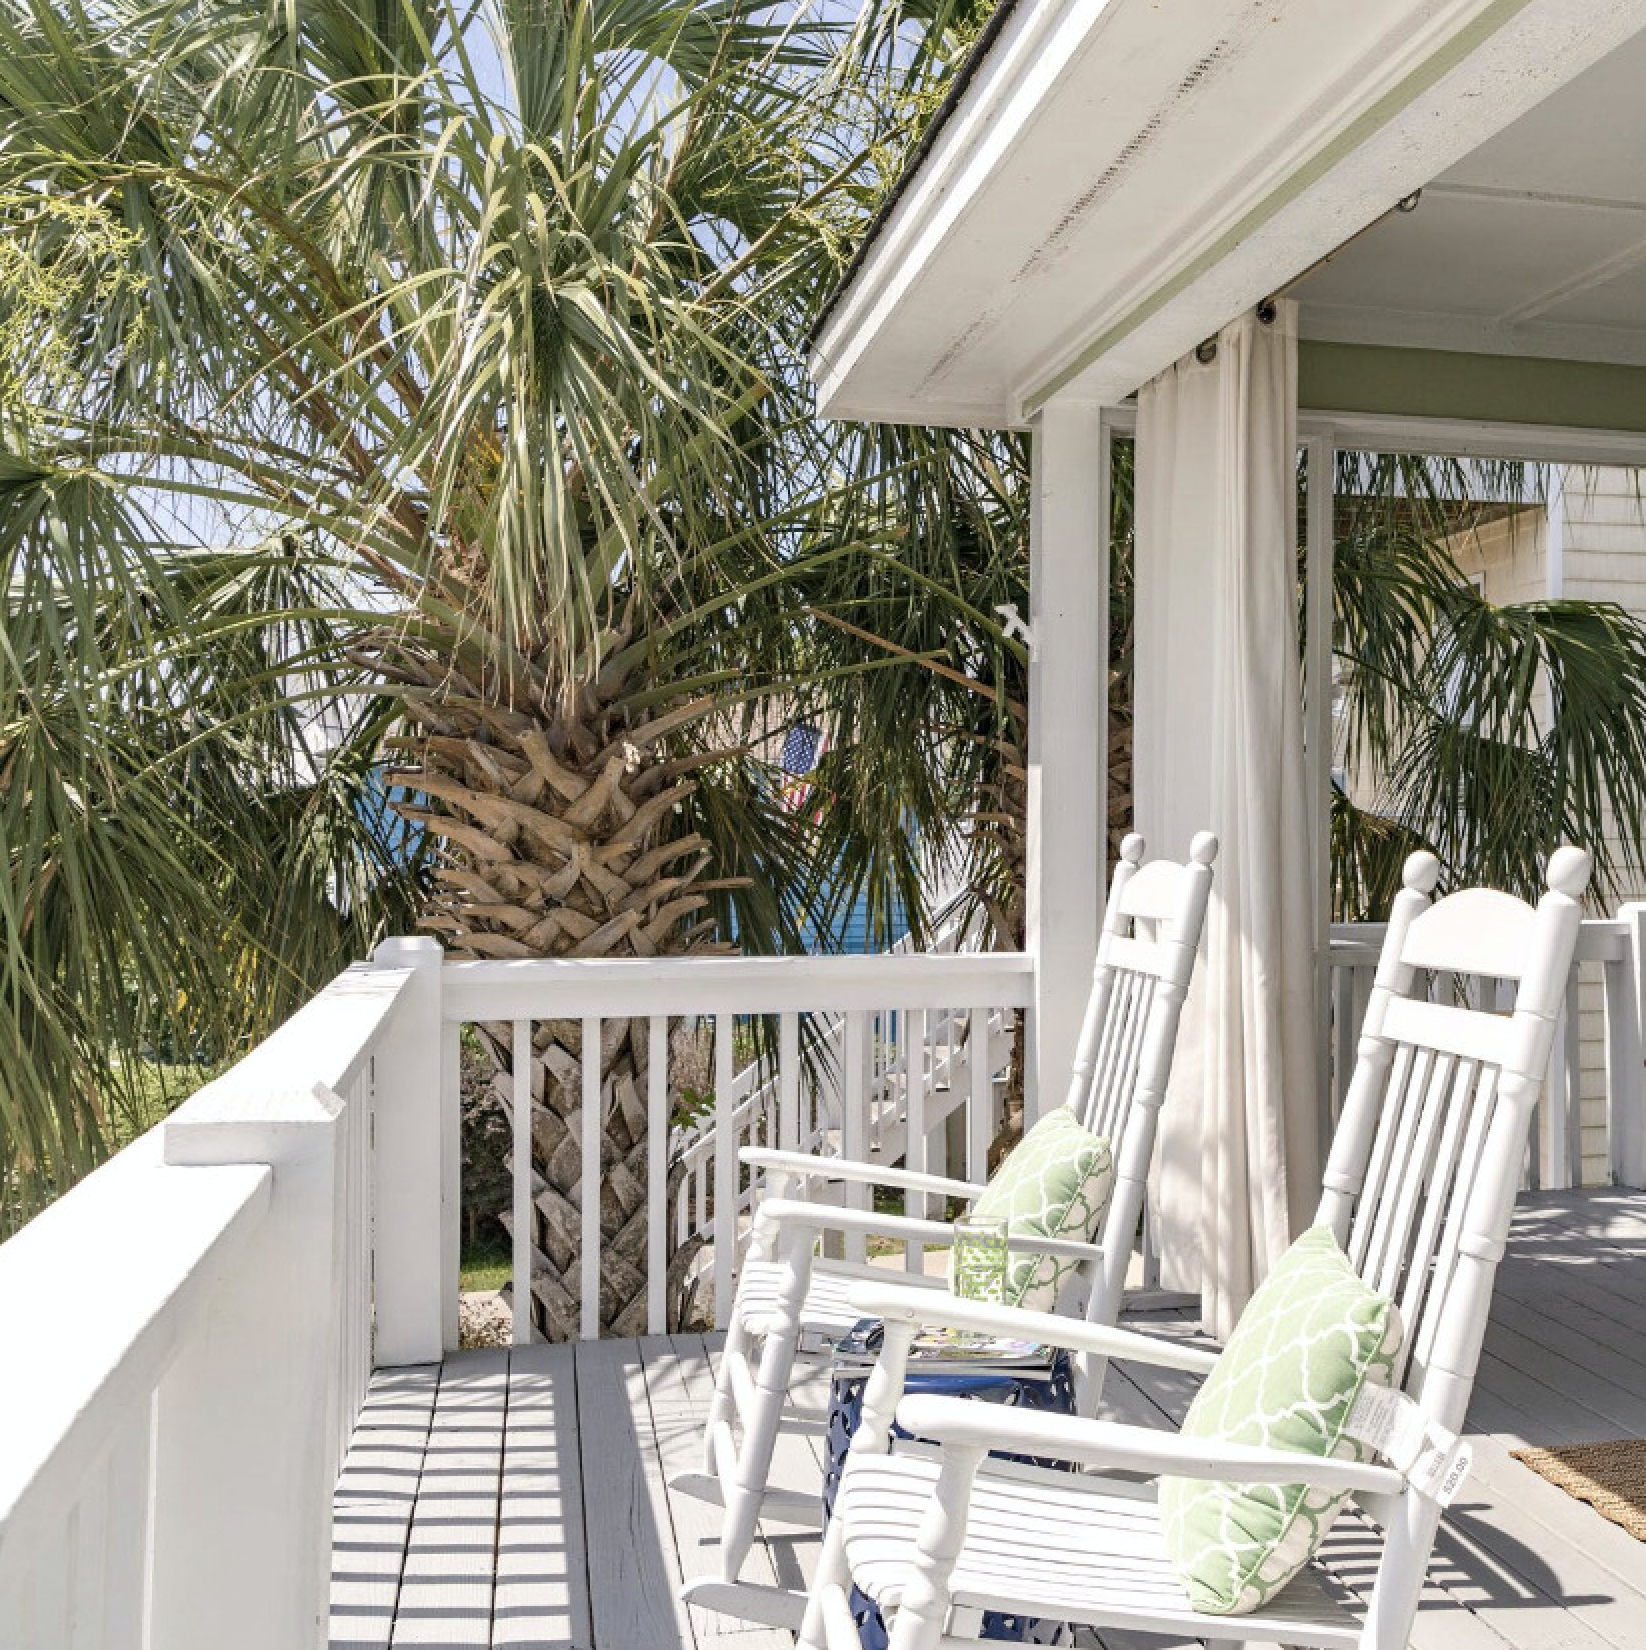 JDD_Best porch with rocking chairs for outdoor living, the coastal second home of Jana Donohoe Designs of Fayetteville, NC.png